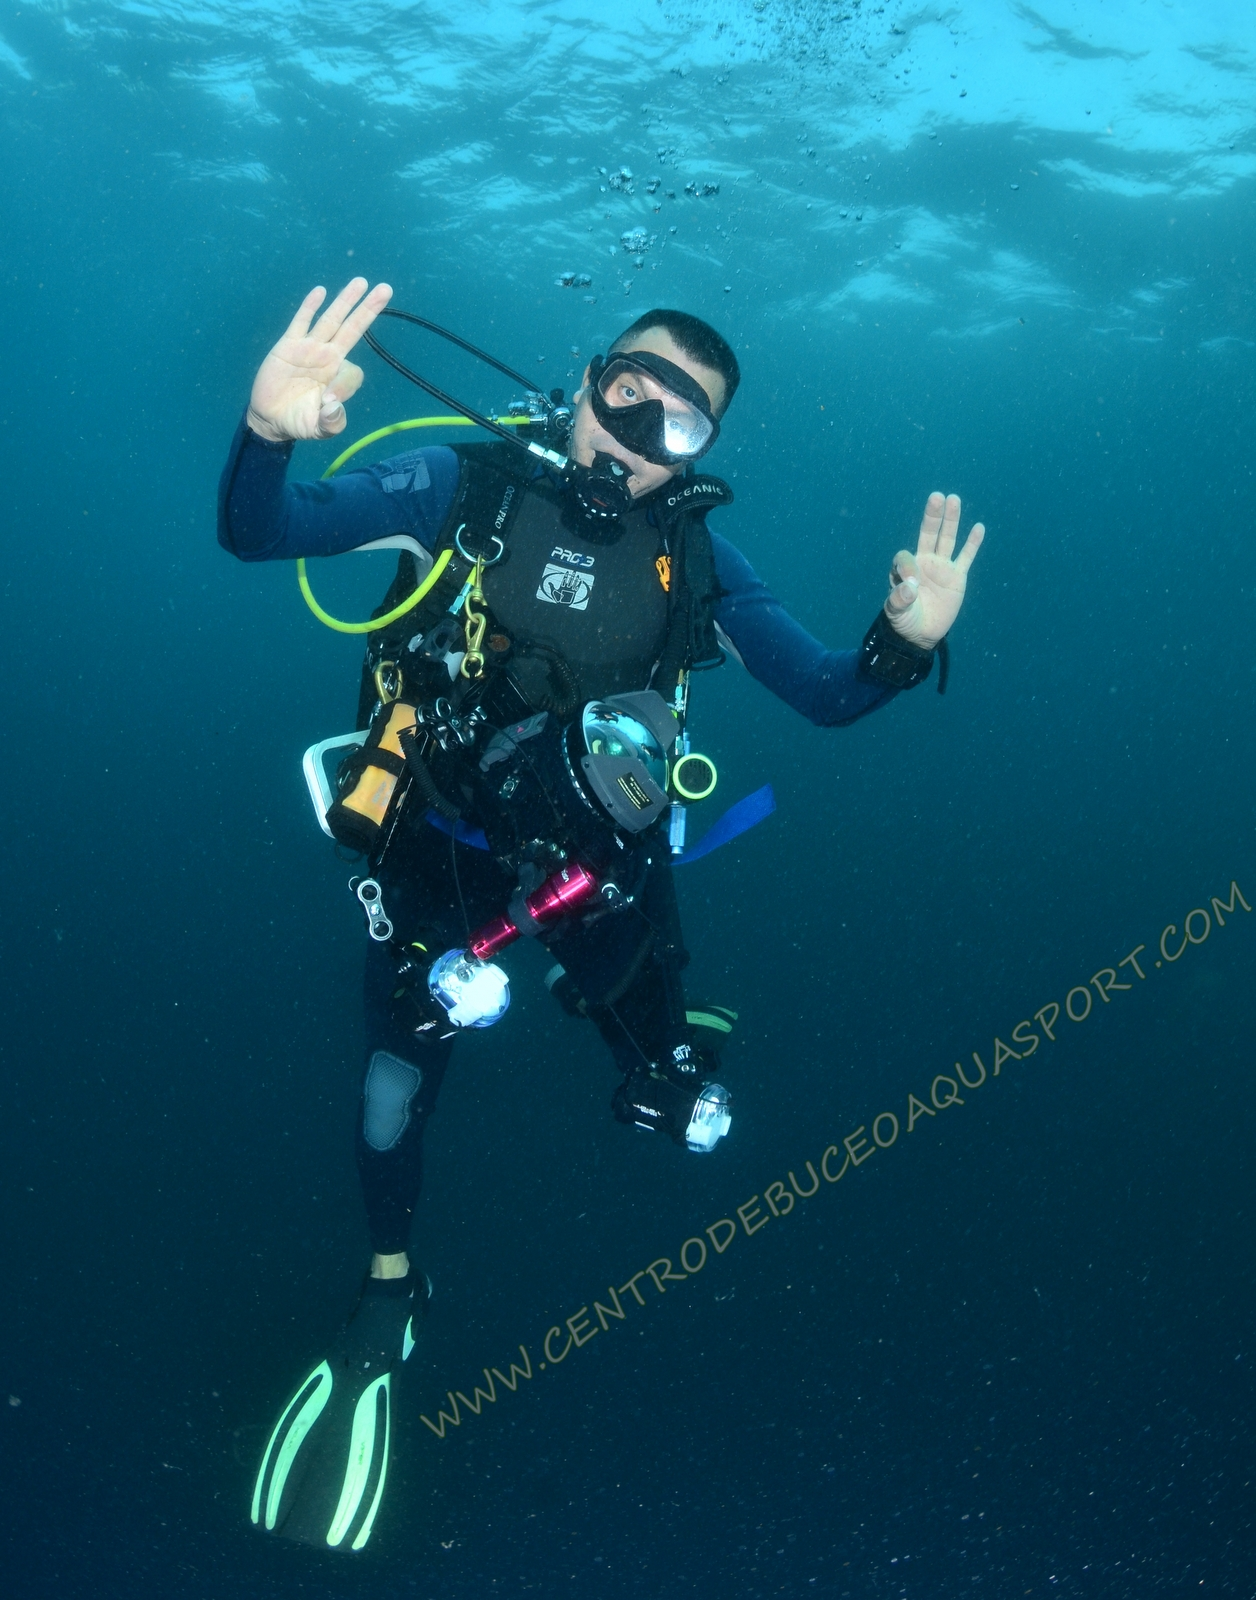 underwater-photography-aquasport-tayrona-scuba-diving